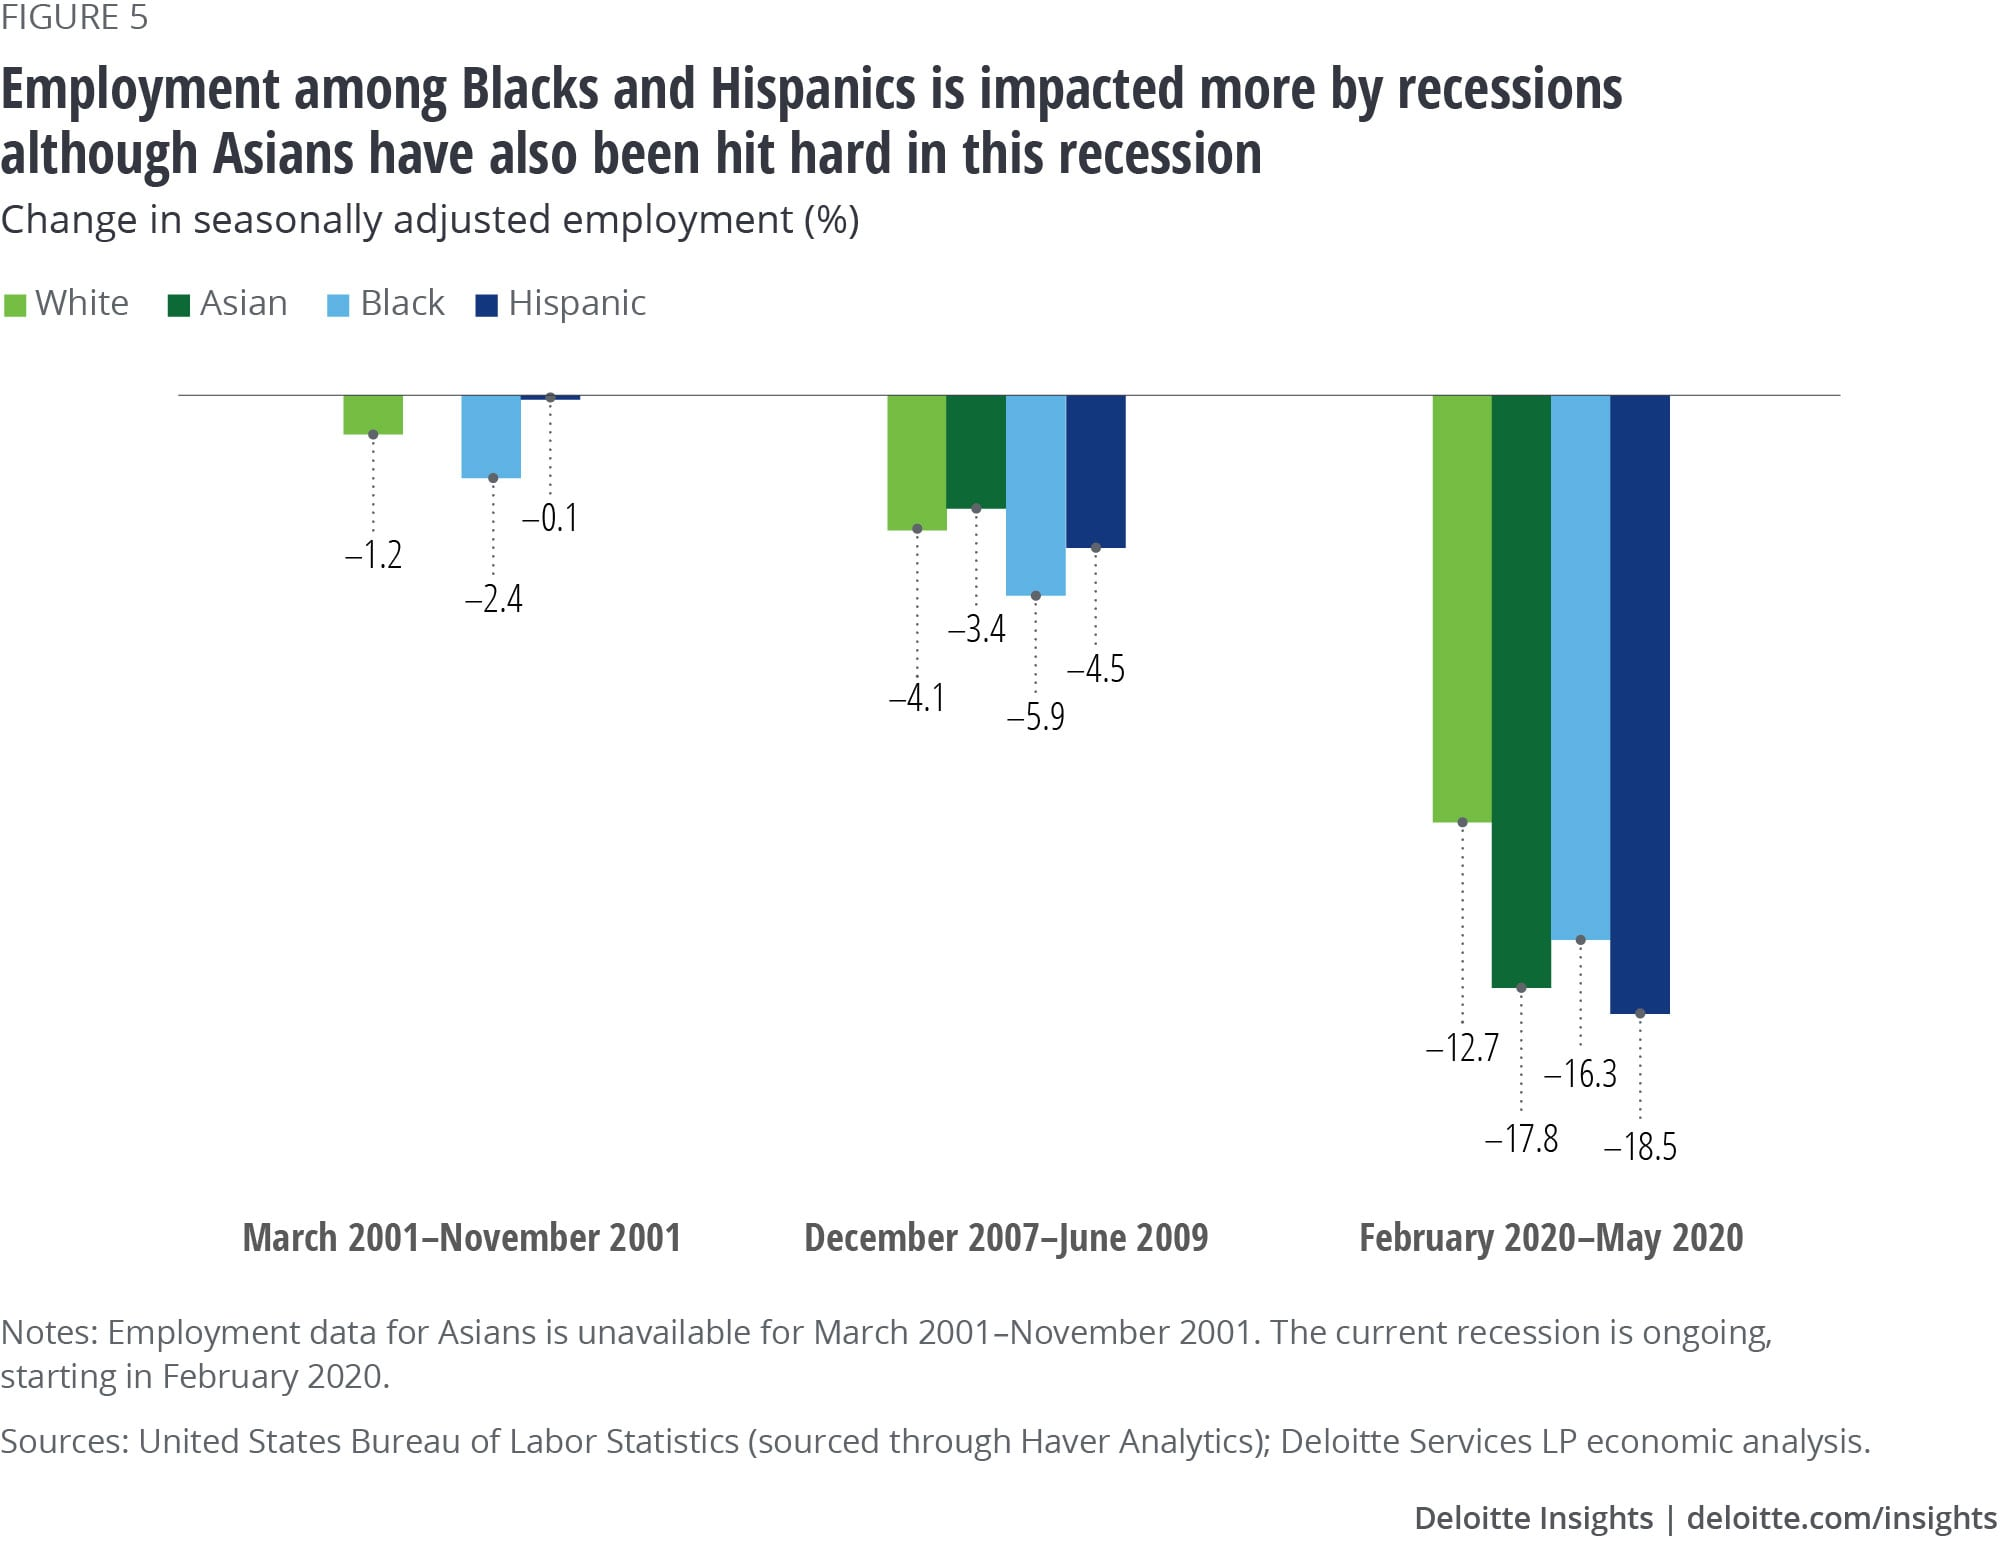 Employment among Blacks and Hispanics is impacted more by recessions